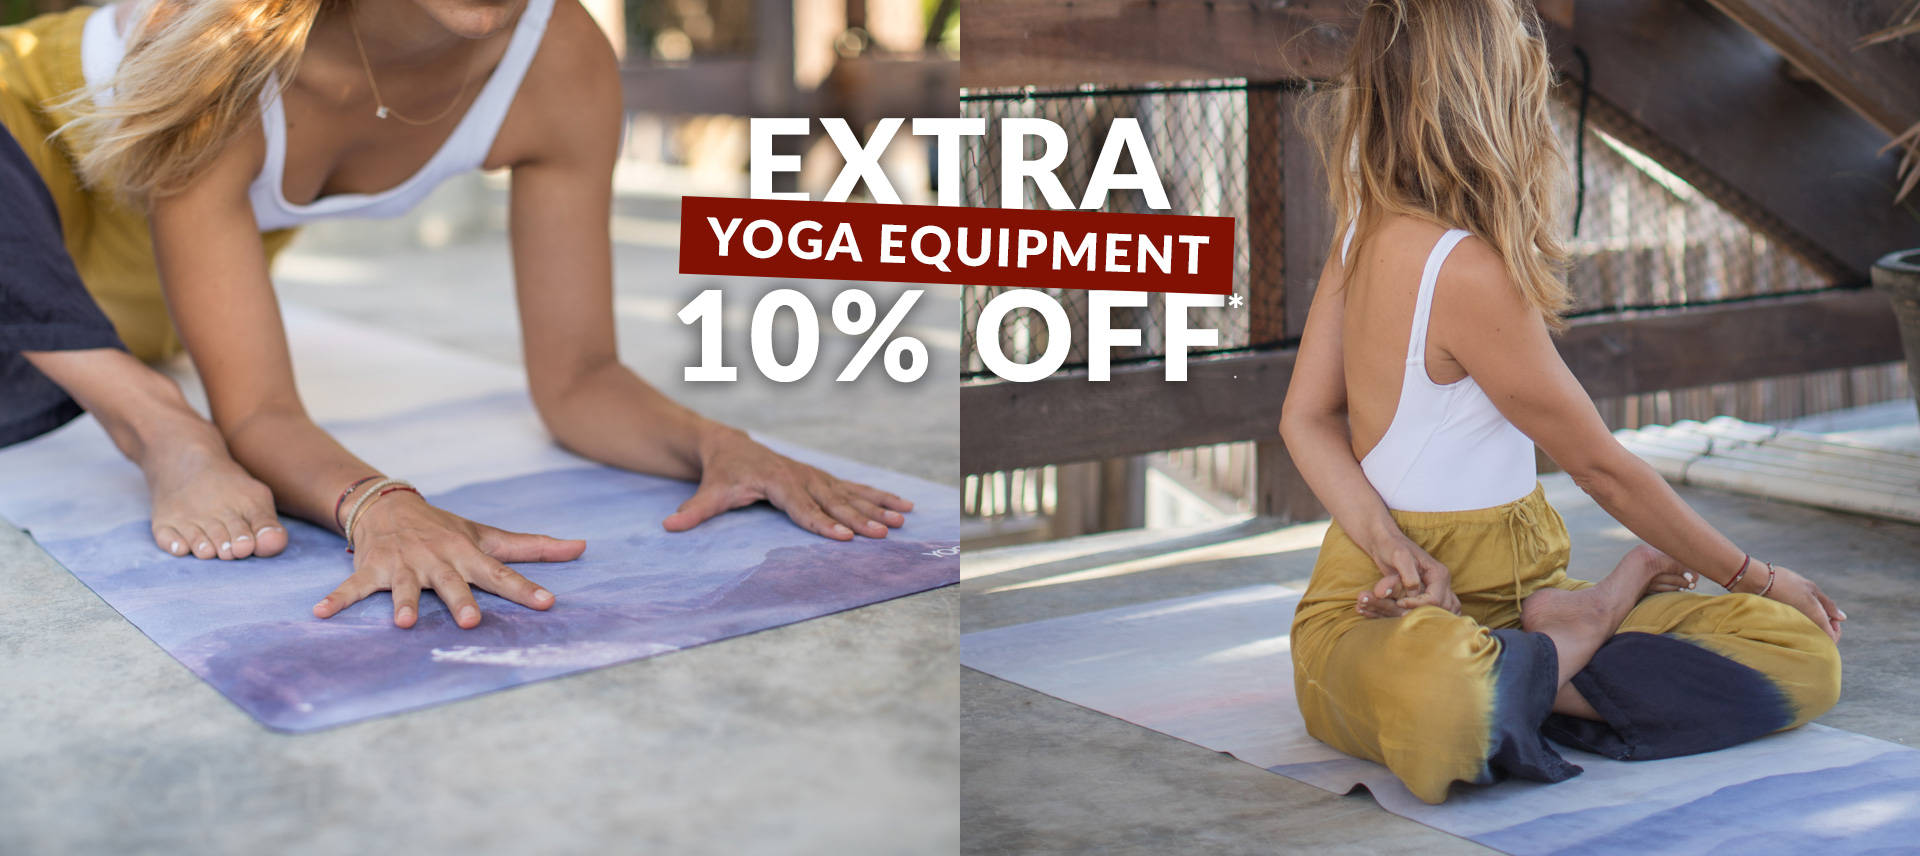 Use Code 'YOGAMONTH' to Save an Extra 10% on Yoga Equipment This September